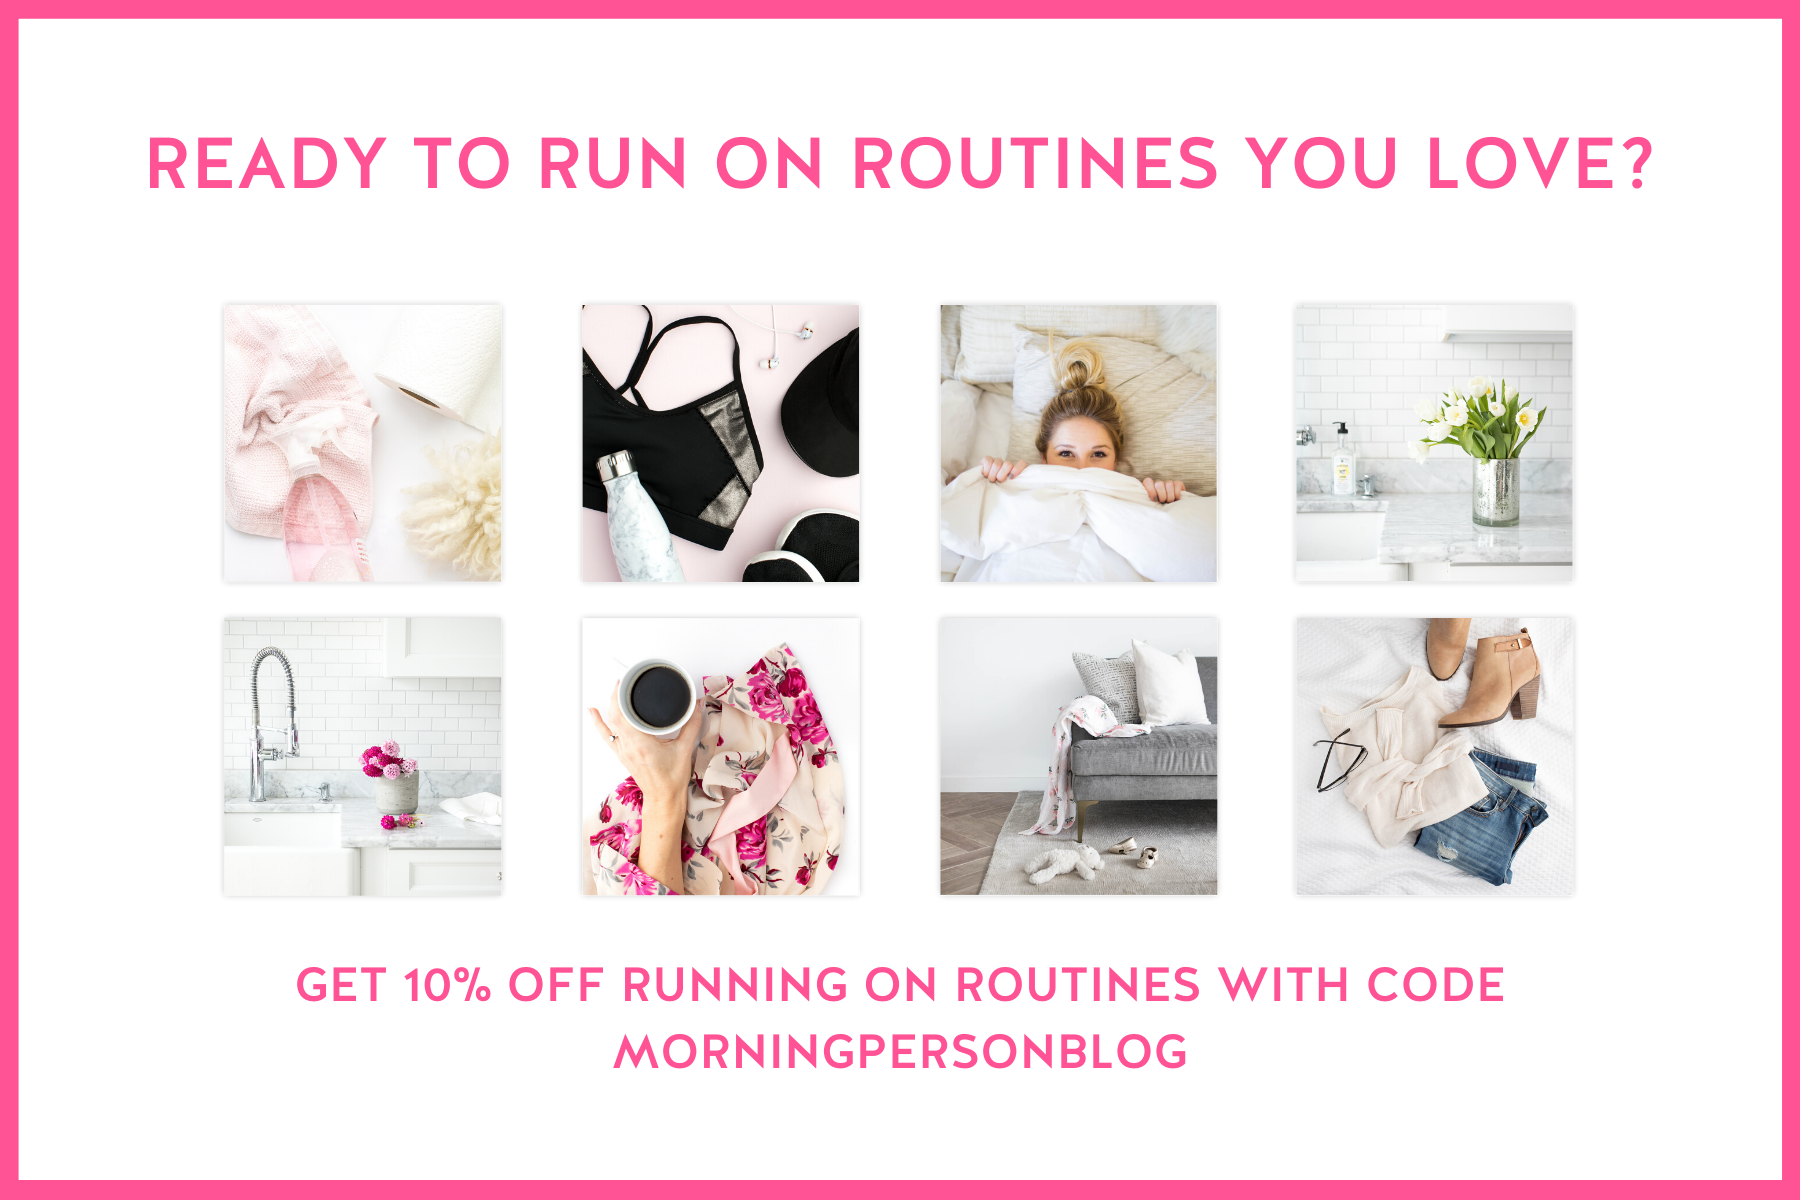 Ready to run on routines you LOVE? Get 10% off Running on Routines from The Productivity Zone!!